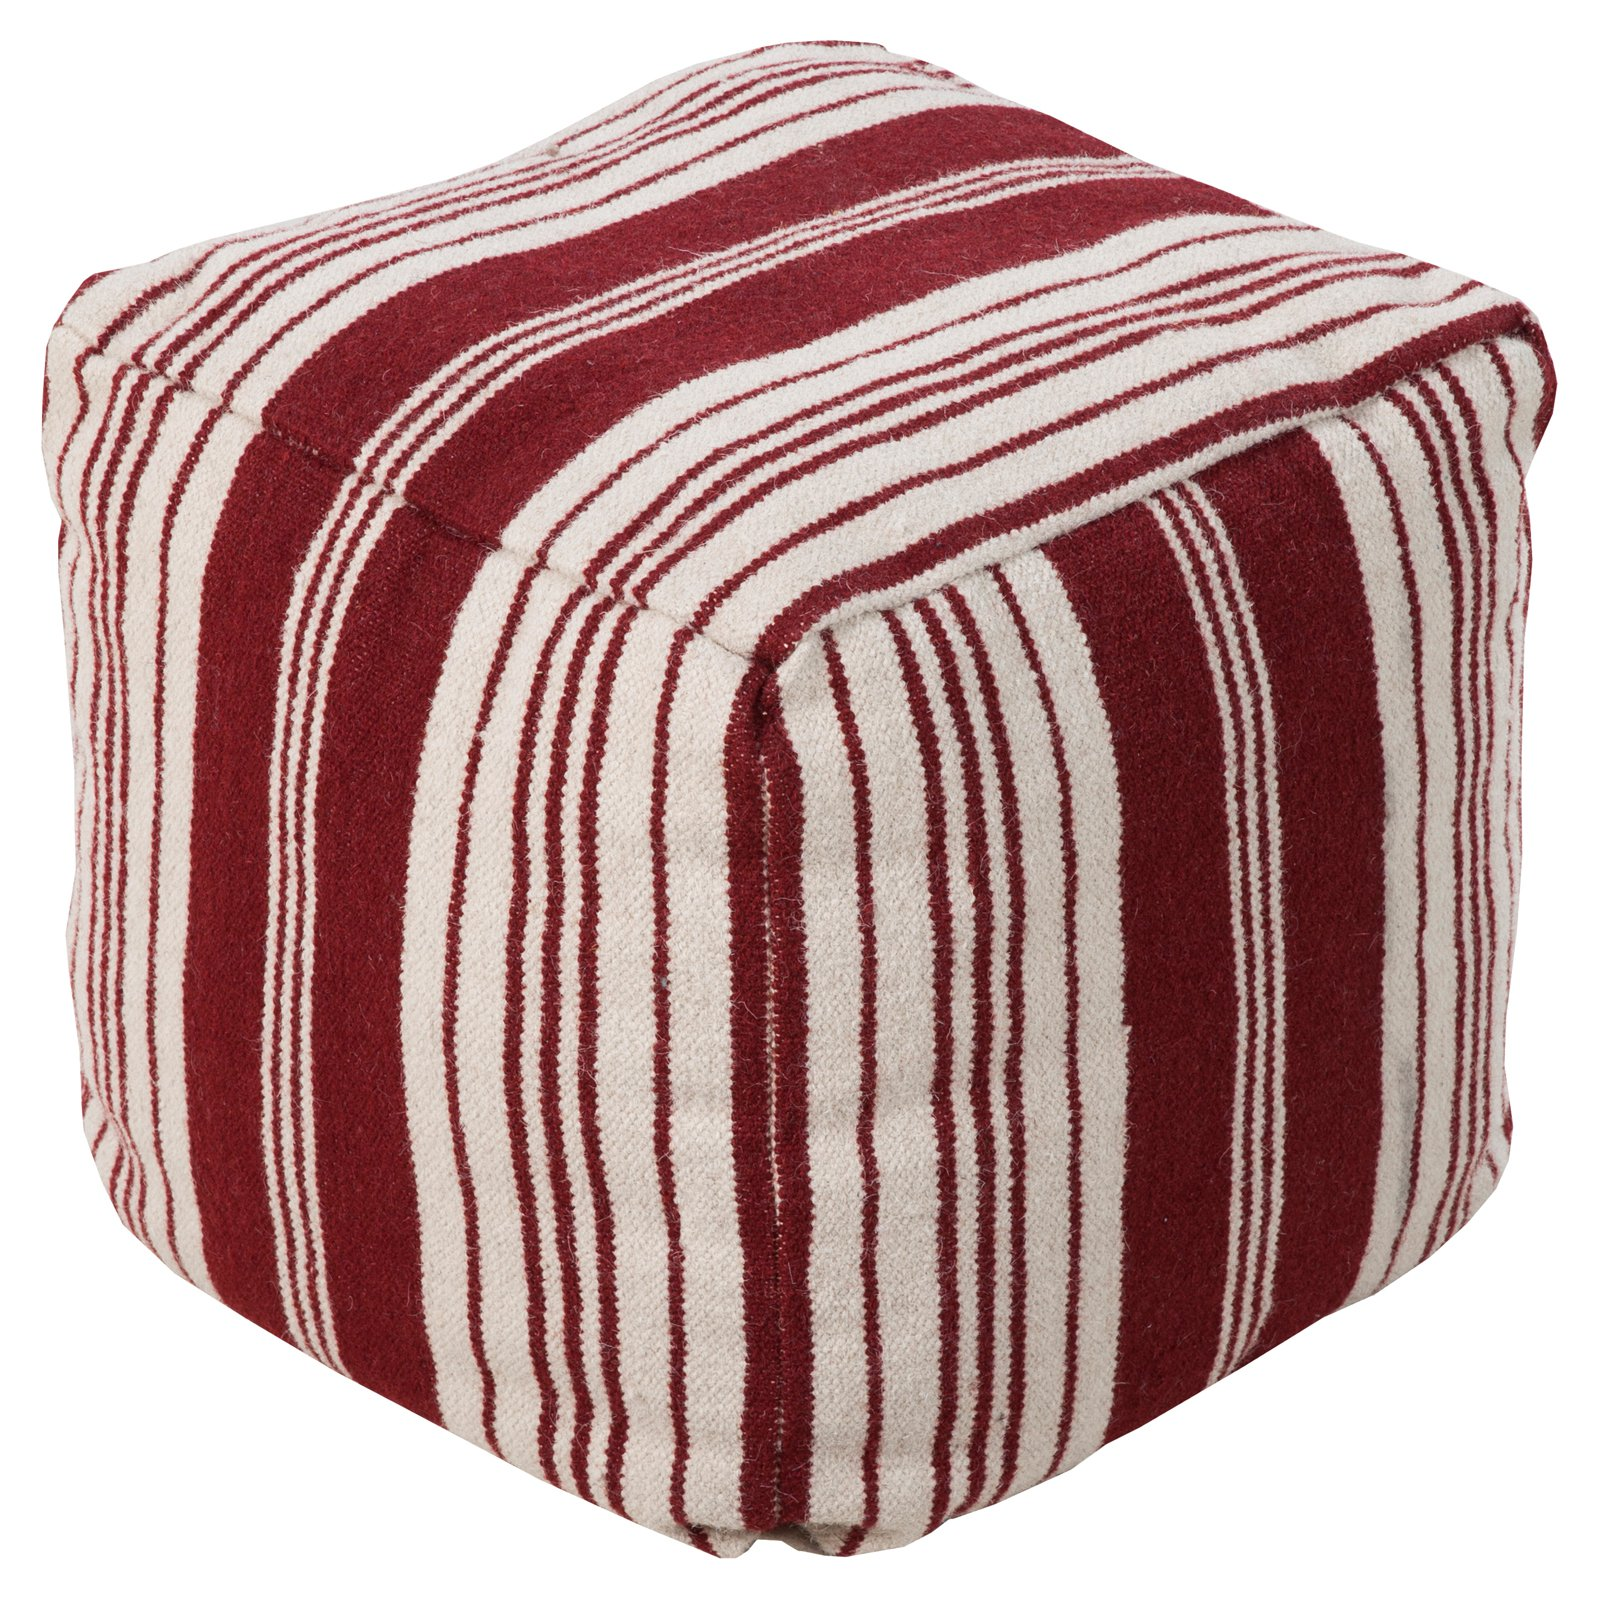 Surya 18 in. Cube Wool Pouf Carnelian   Antique White by Surya